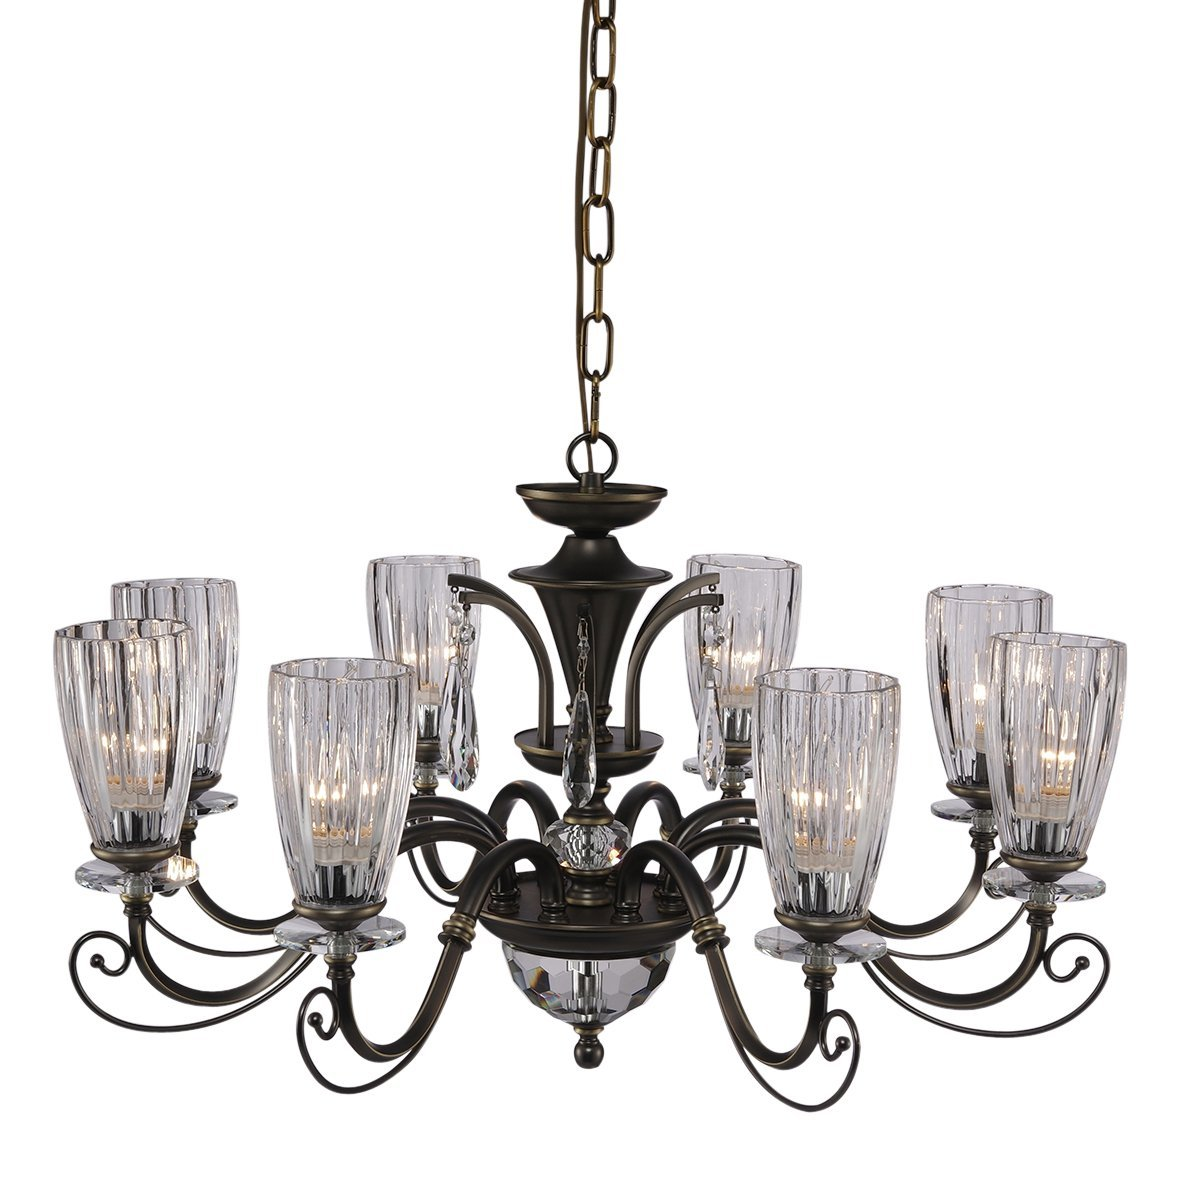 Black Wrought Iron Kitchen Light Fixtures Cheap Wrought Iron Ceiling Light Fixtures Find Wrought Iron